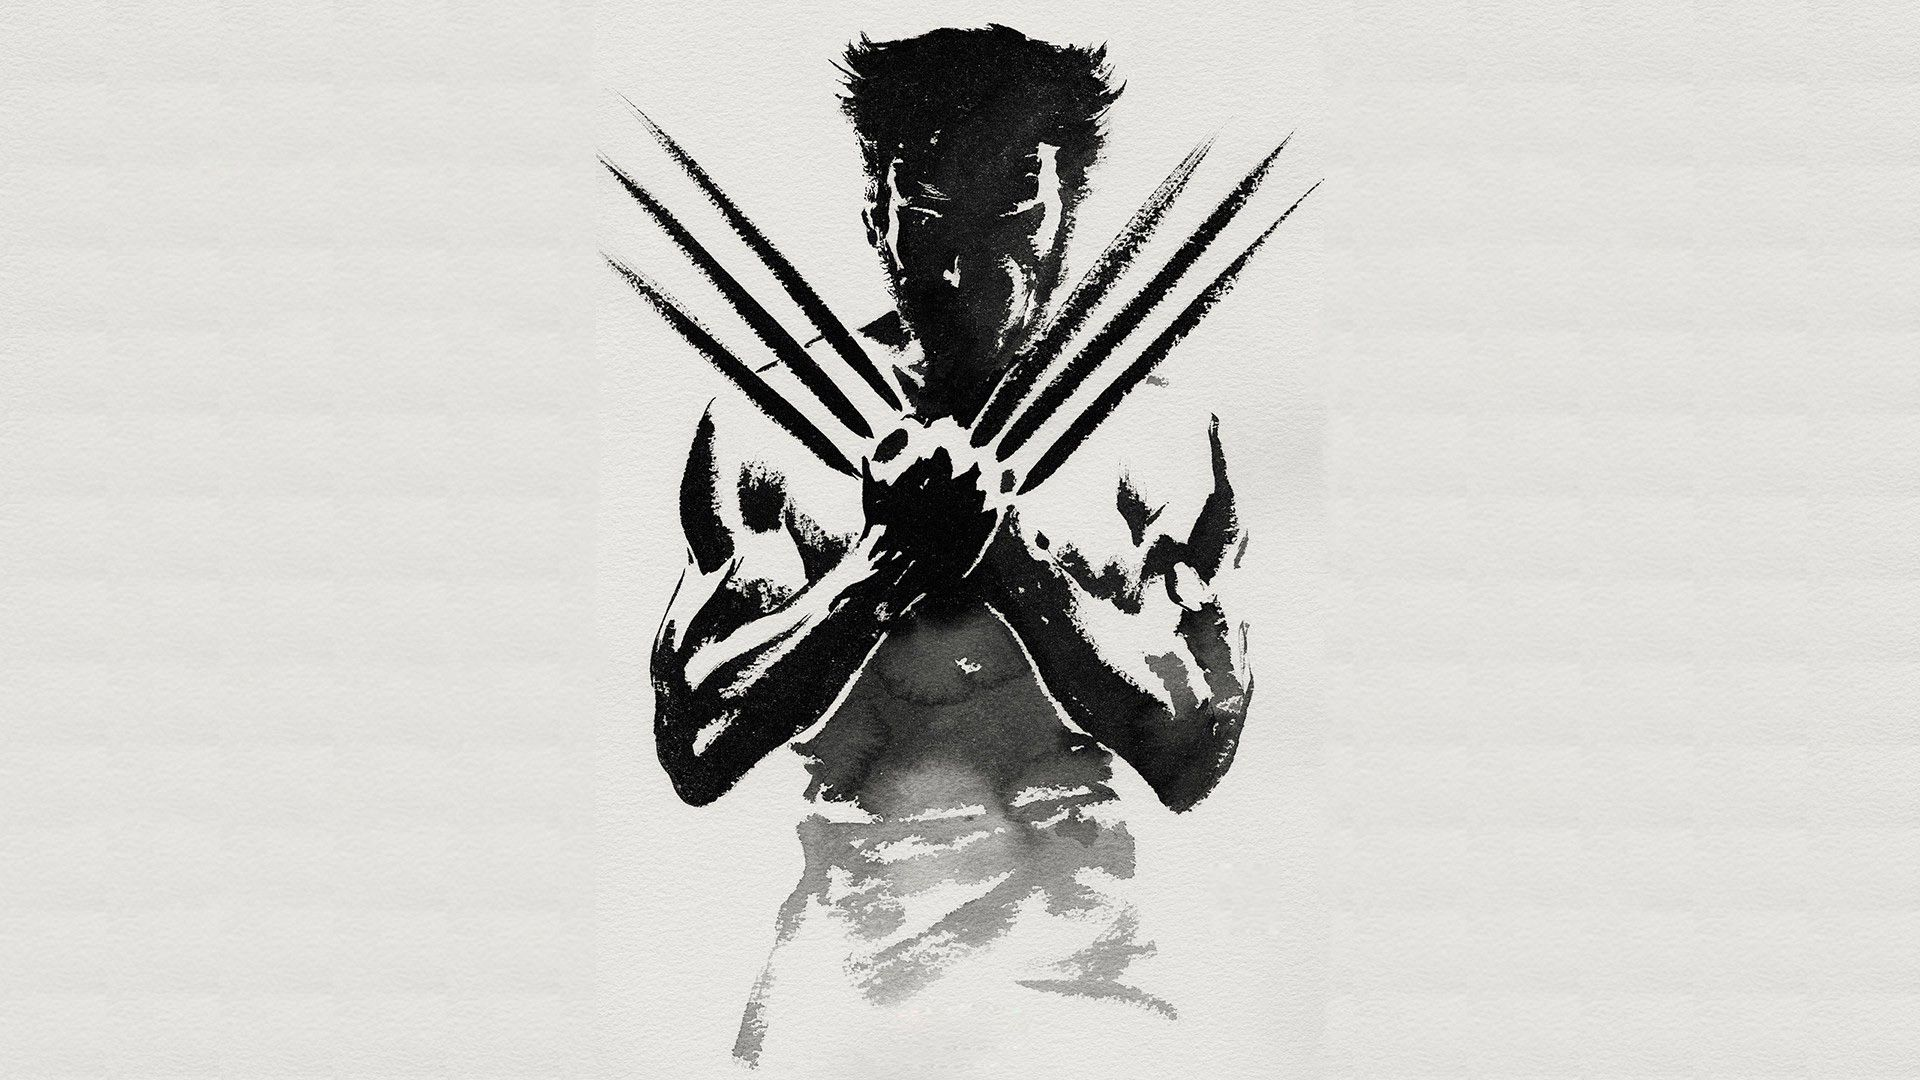 Wolverine Hd Wallpapers Top Free Wolverine Hd Backgrounds